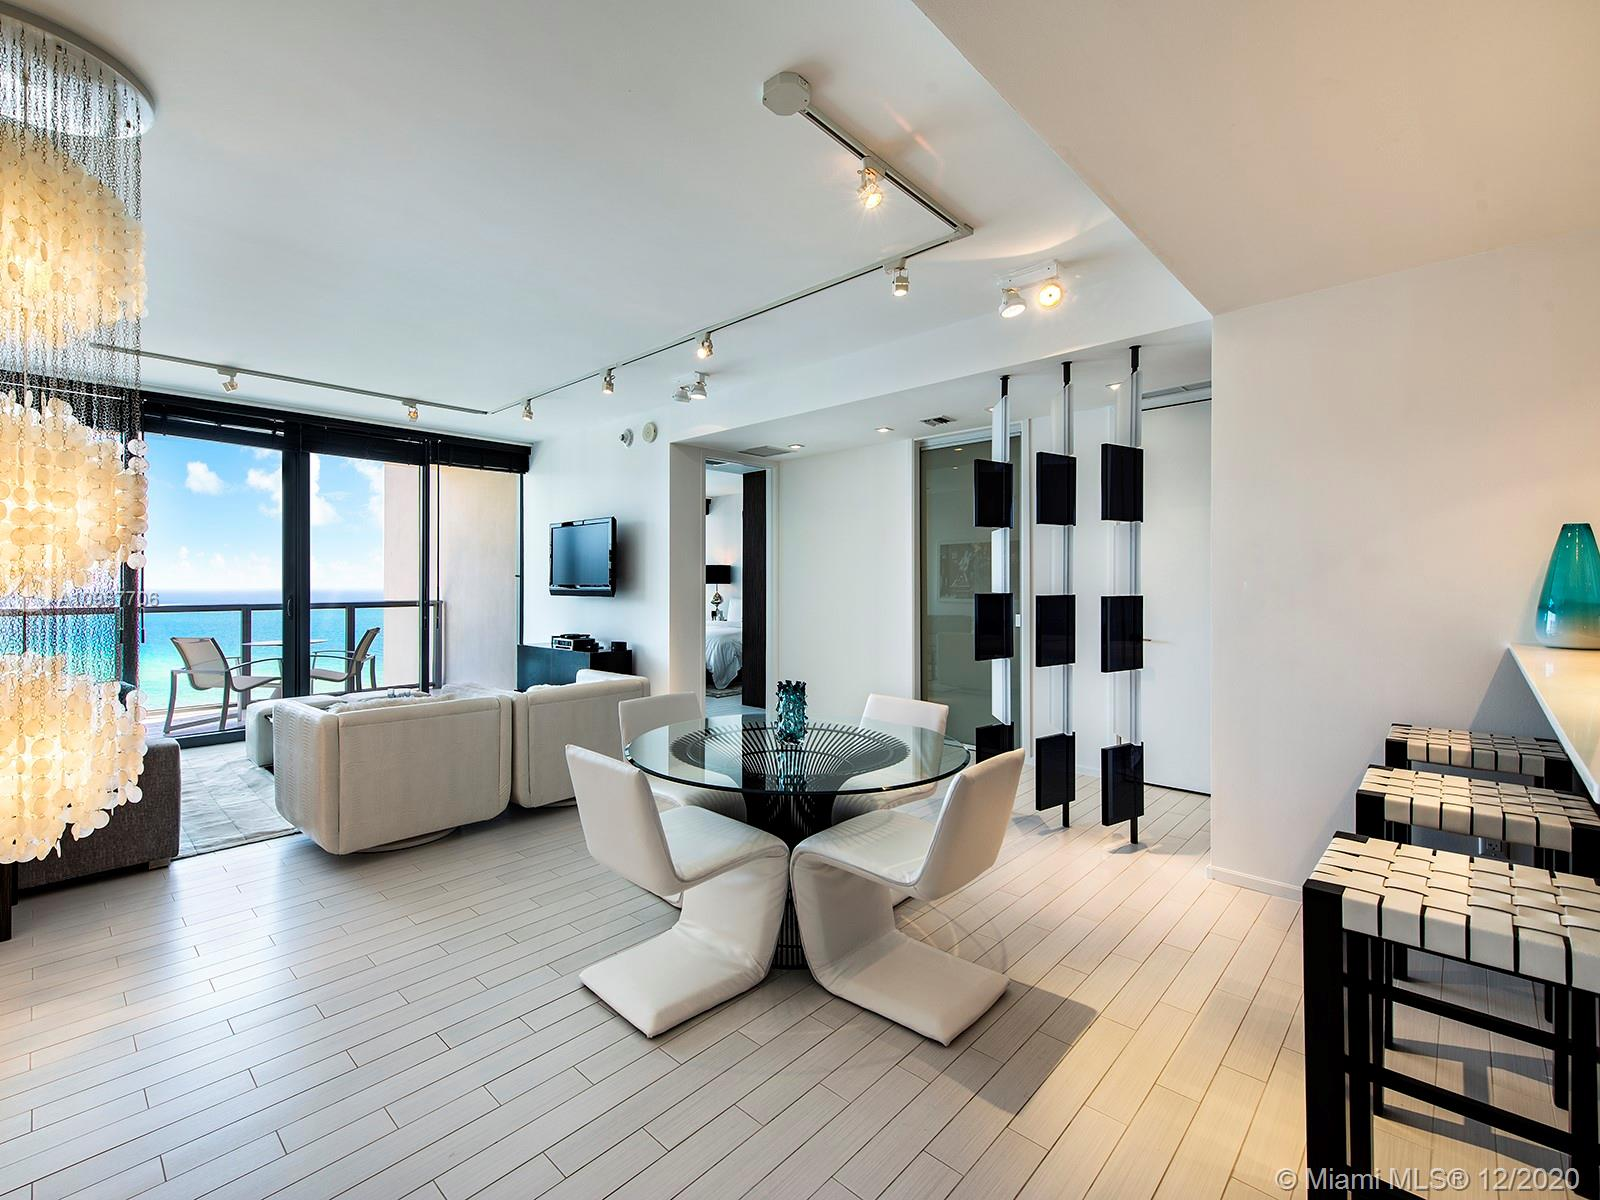 W South Beach #1519 - 2201 COLLINS AVE #1519, Miami Beach, FL 33139